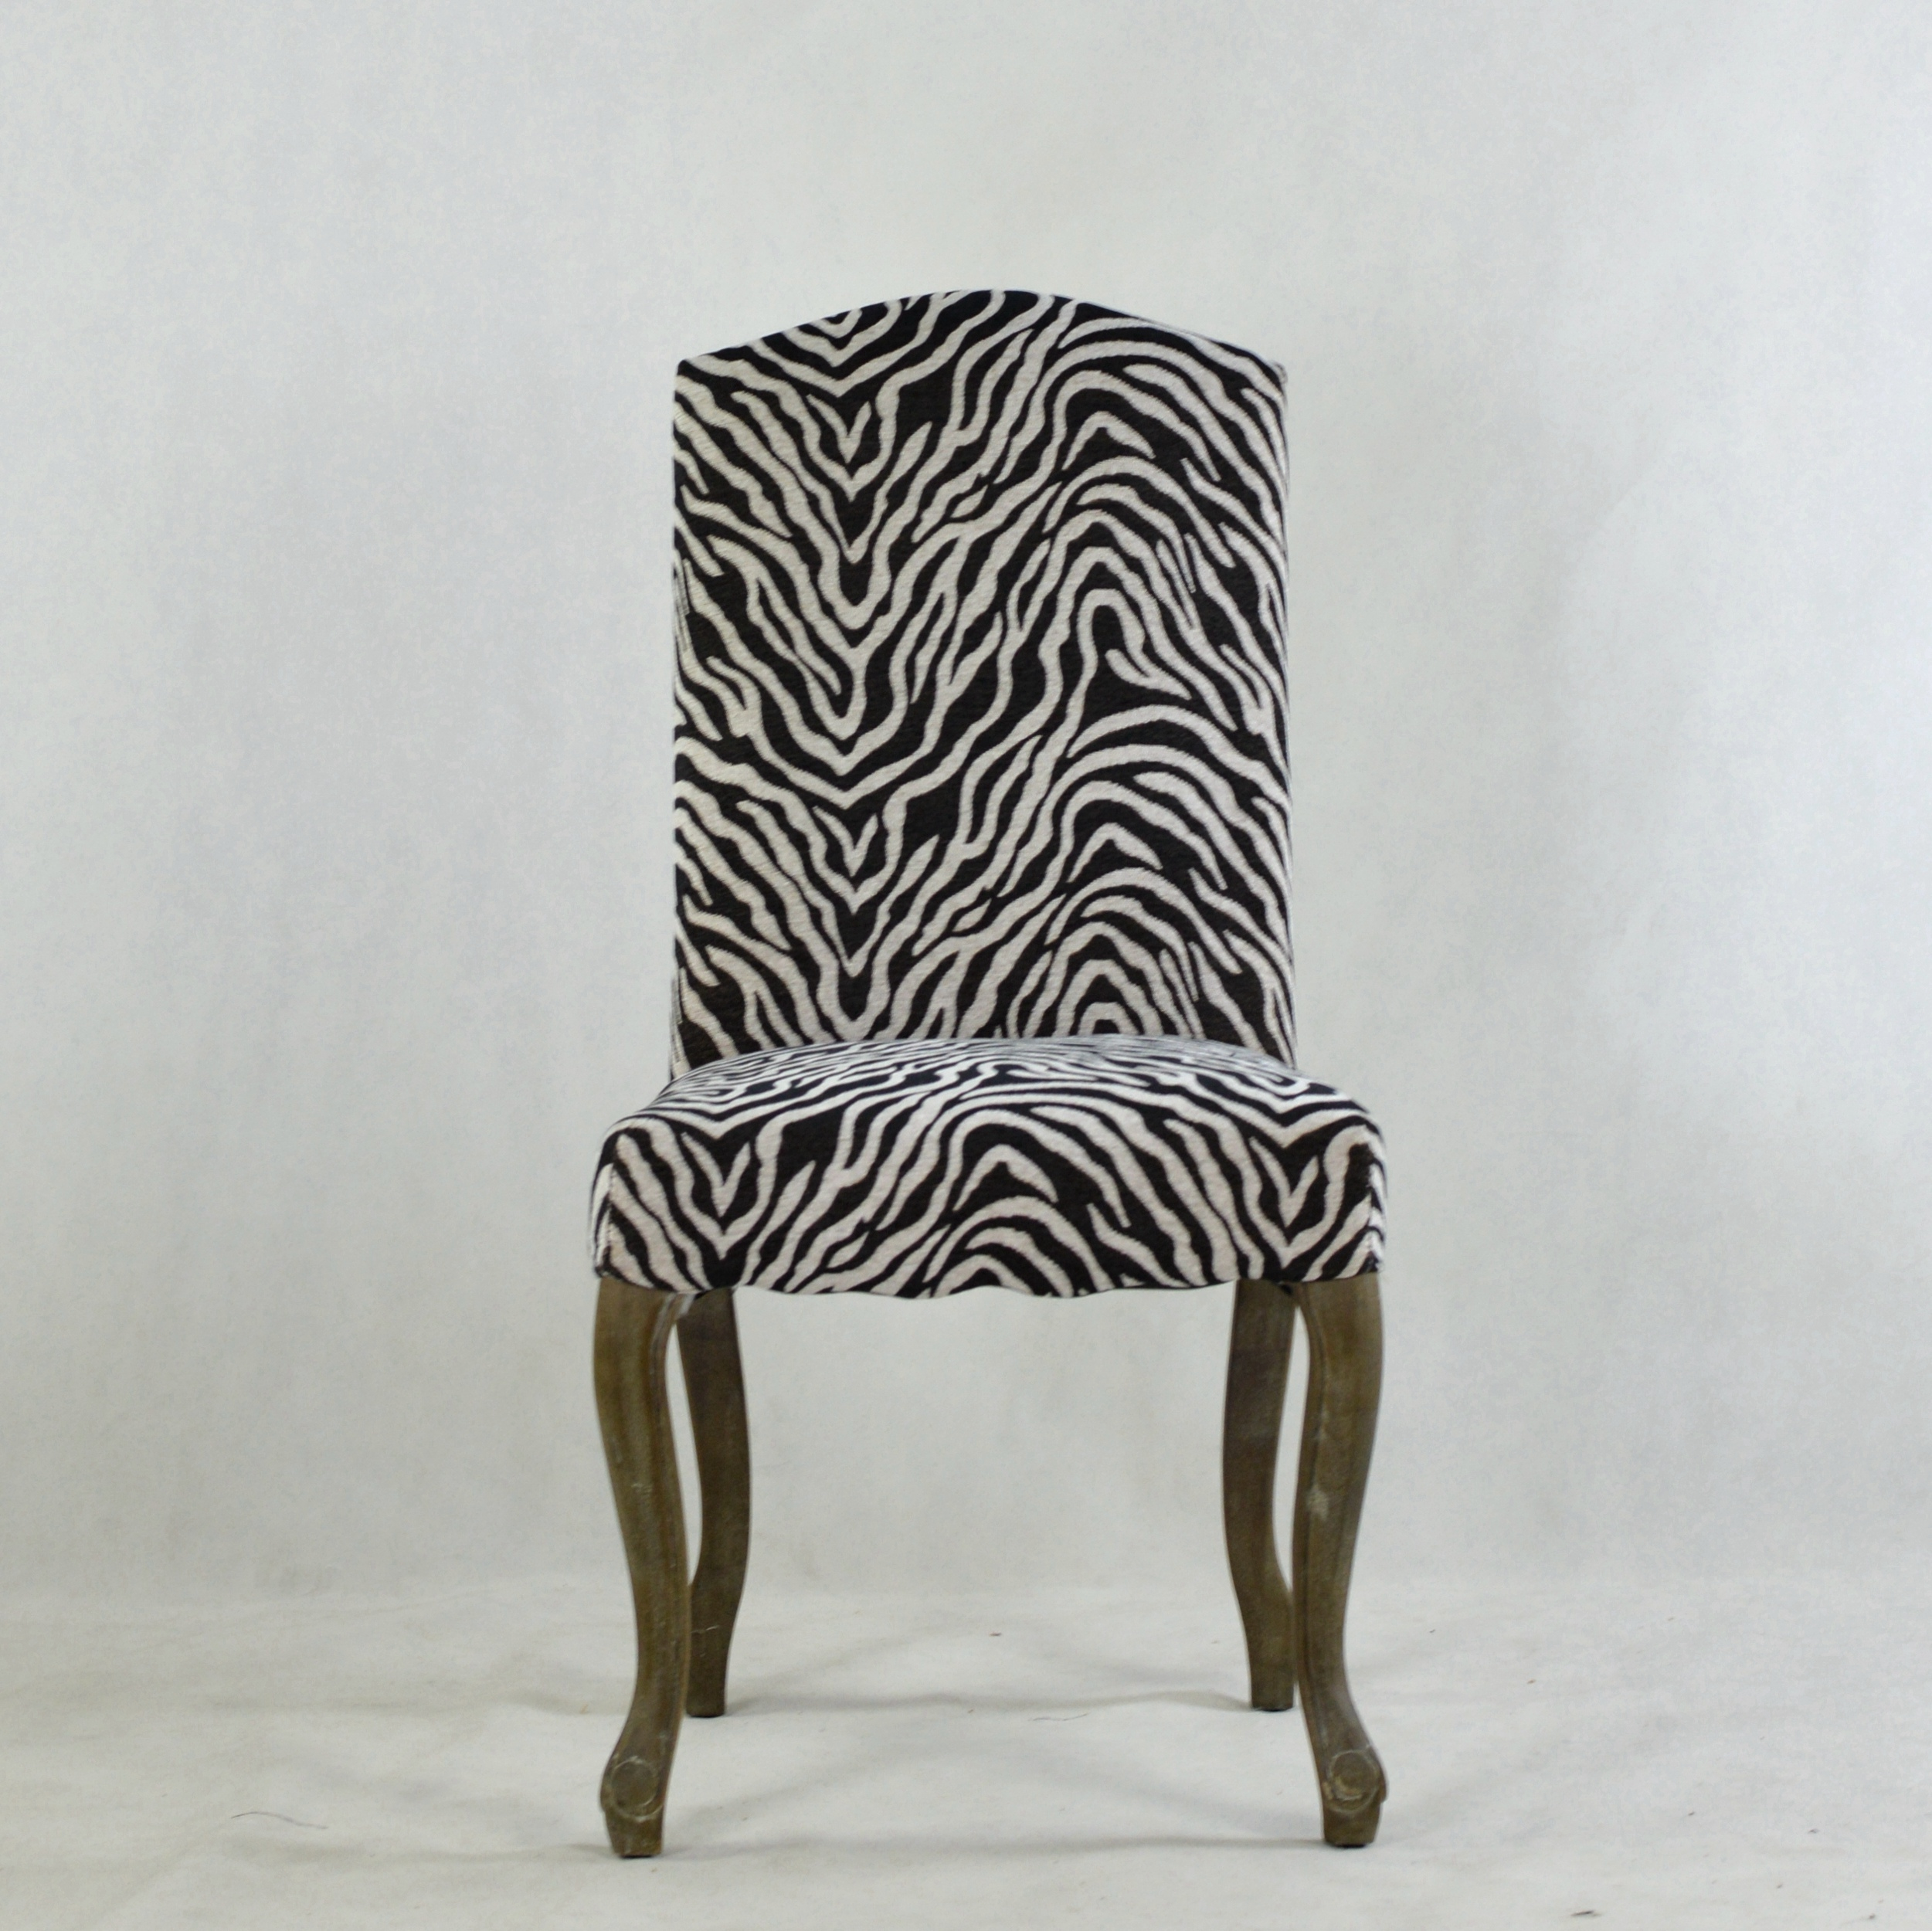 Frank Furniture Wholesale Wooden Dining Chair Zebra Style Home Decor High Back Dining Chair